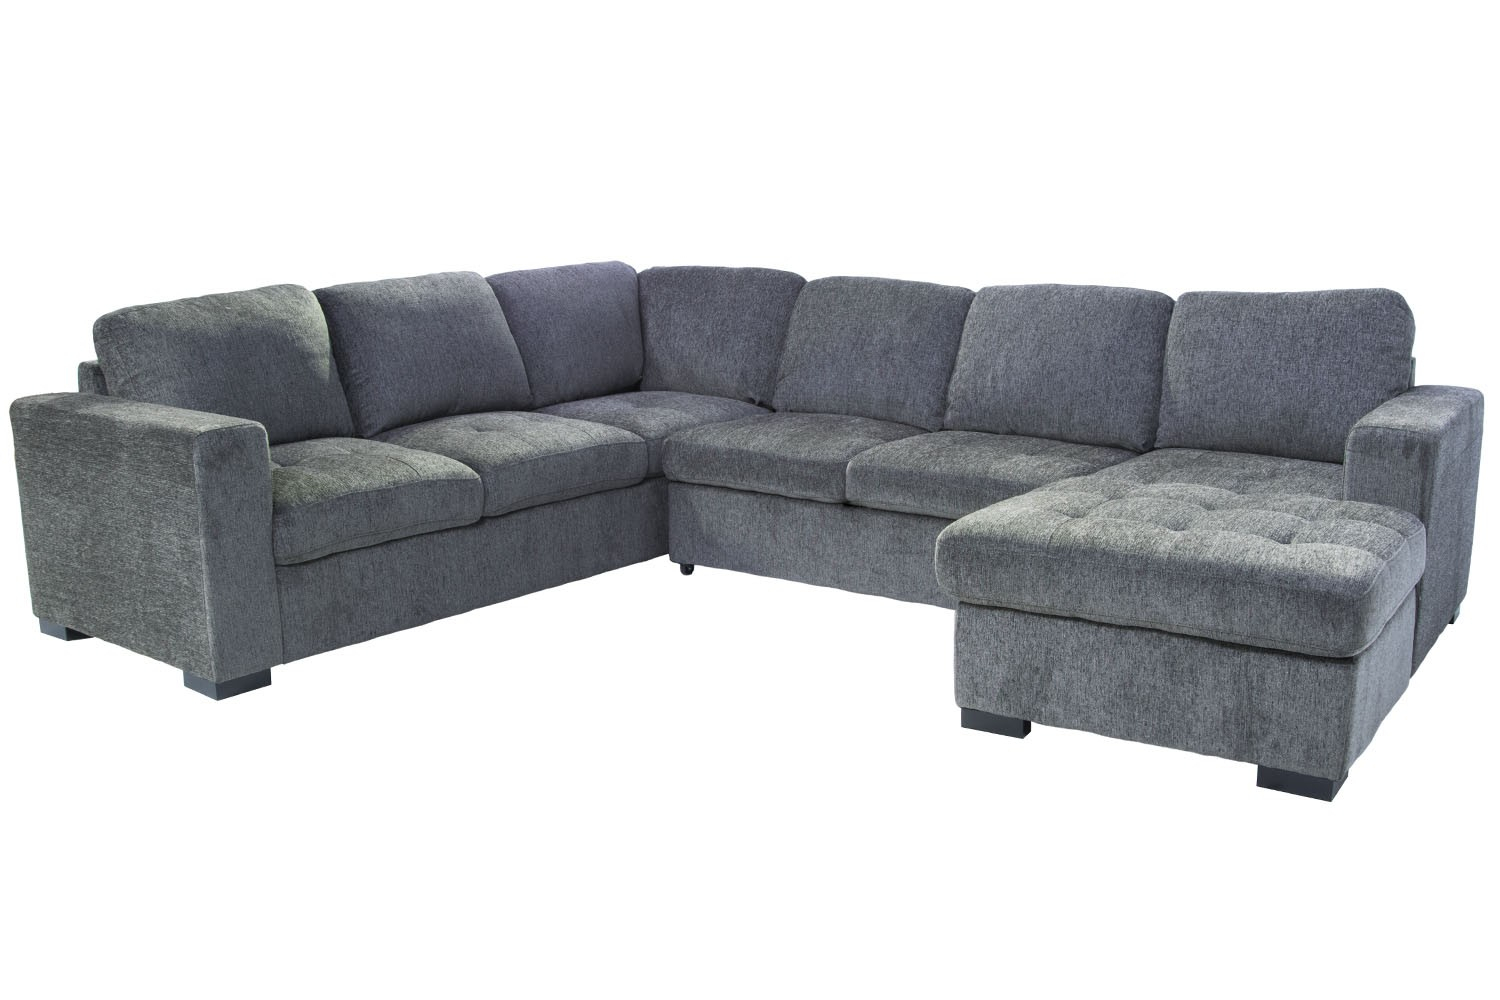 Sectional Sofas | New Year's Sale On 500+ Products With Escondido Sofa Chairs (Image 19 of 25)